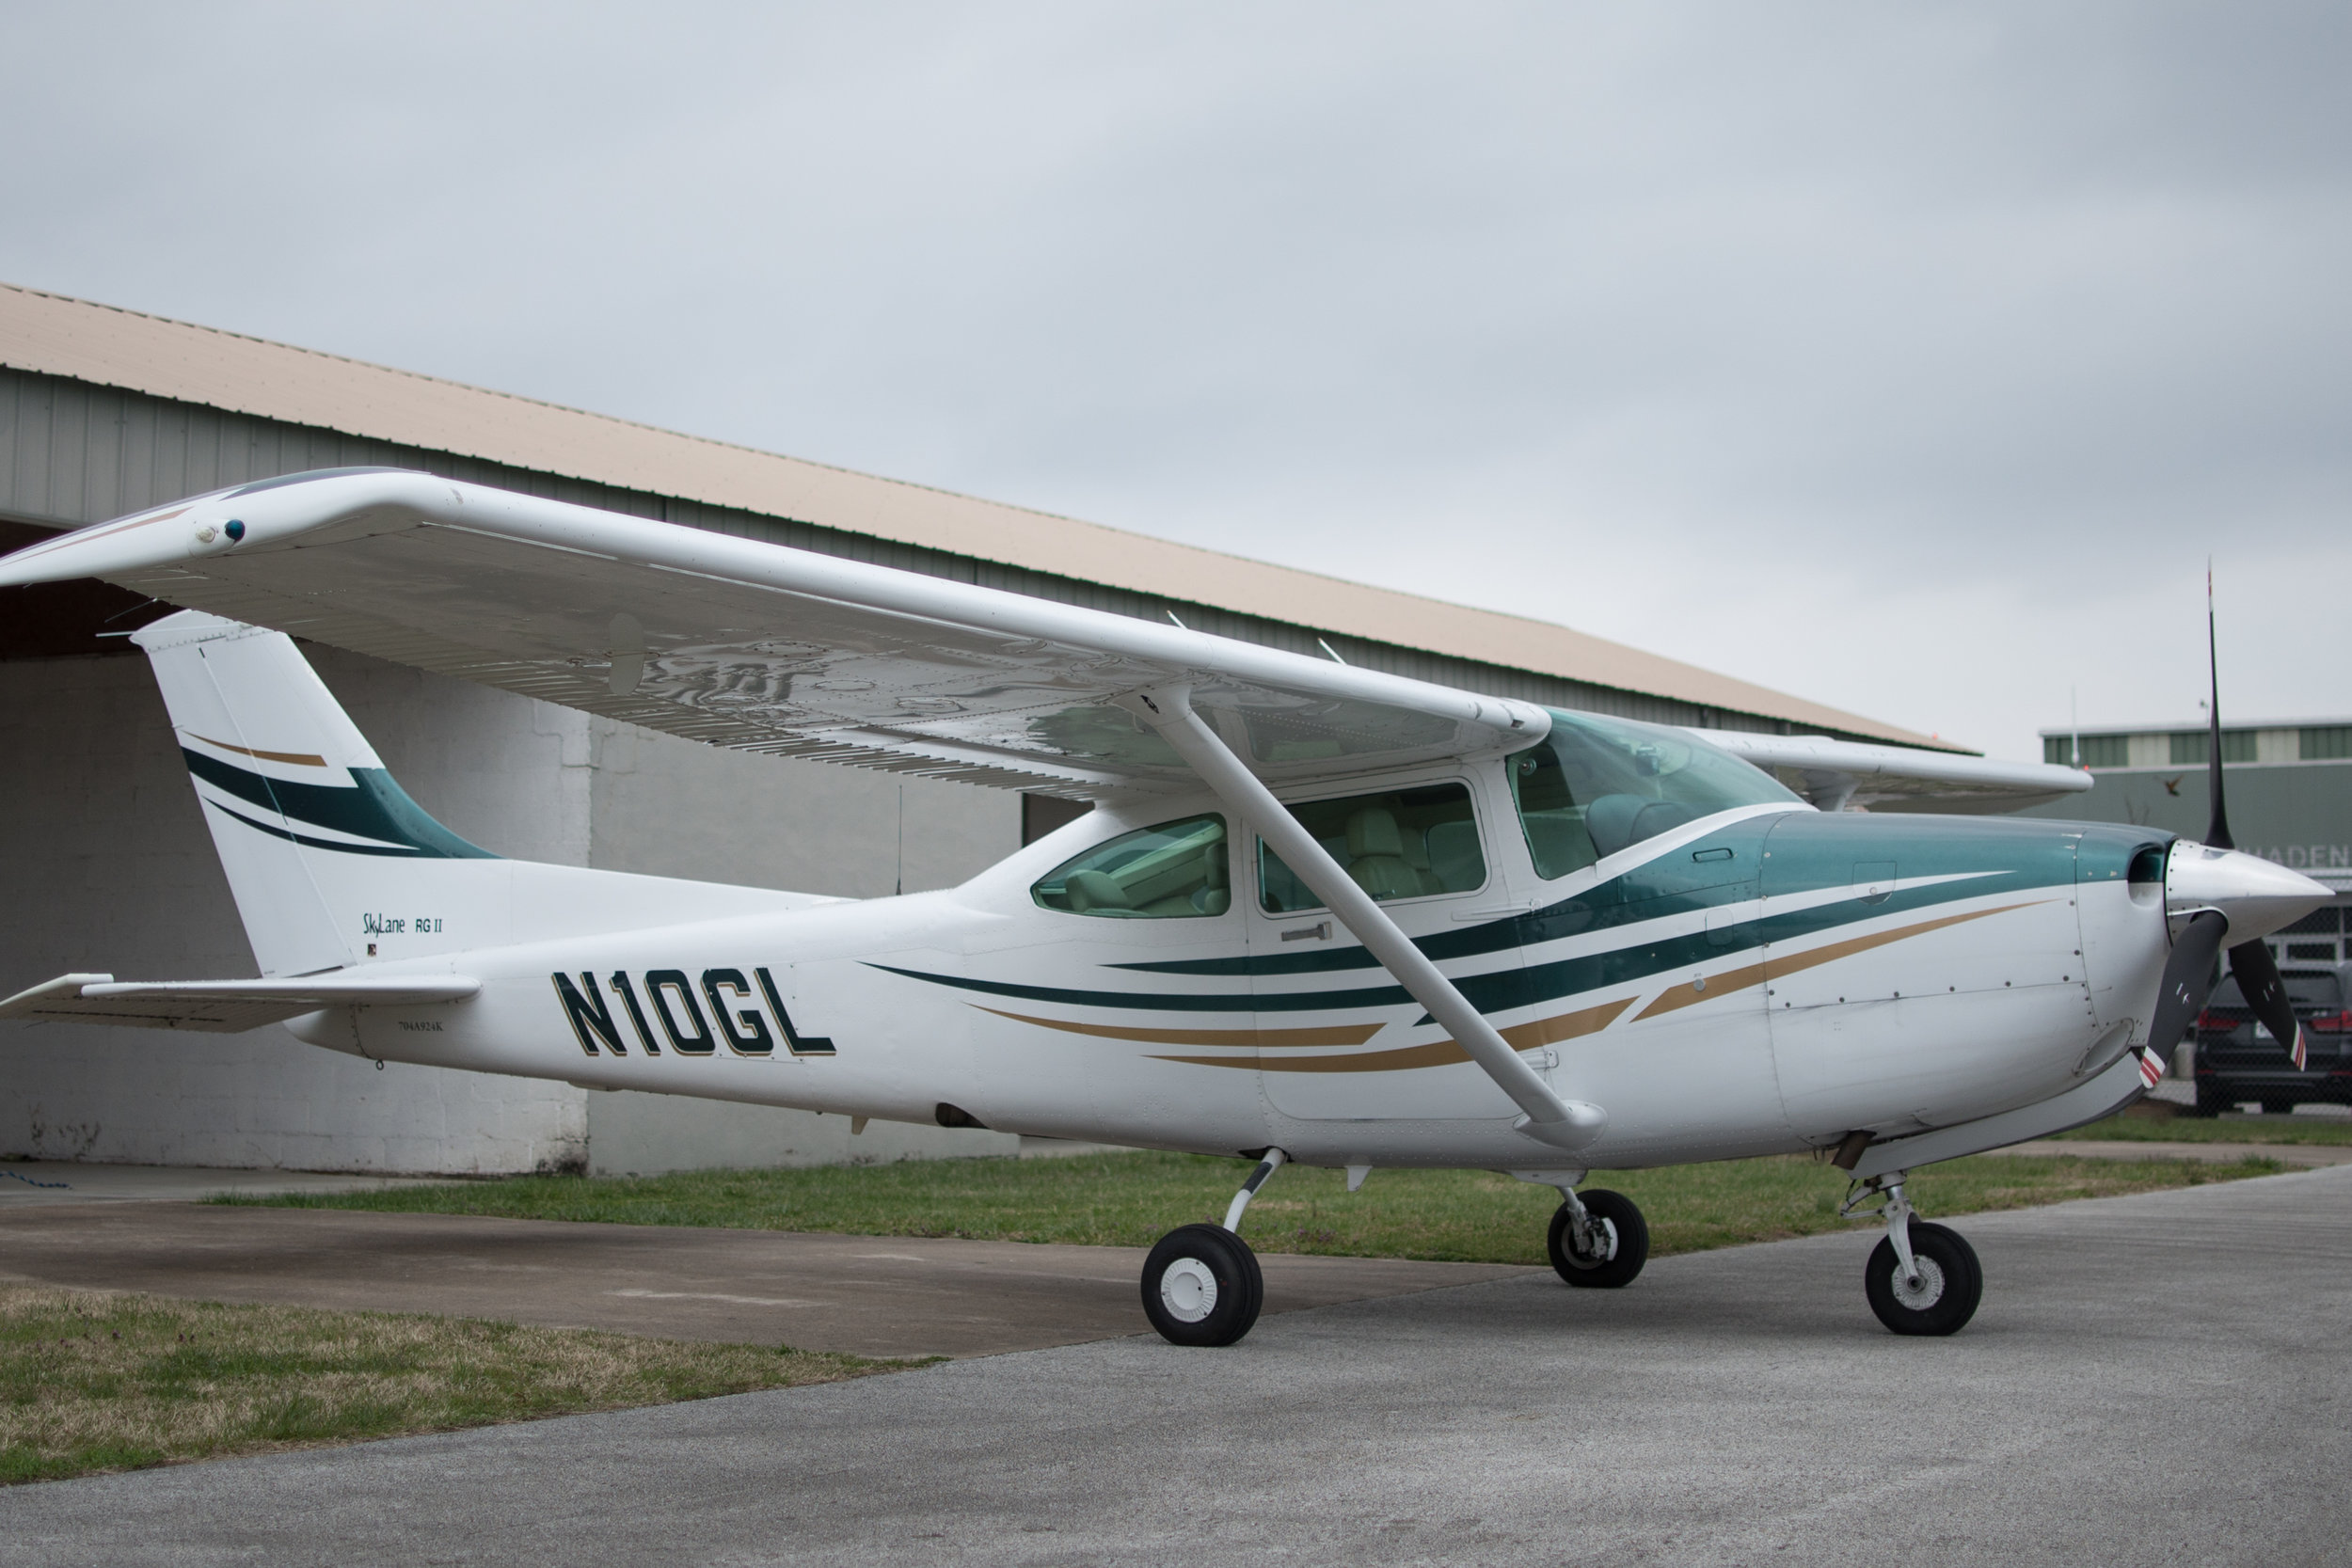 Cessna 182 RG - The Cessna 182 is one of the most popular aircraft in the world. Two people with light overnight bags can travel for 3 hours at 180 MPH without a full stop, and It can safely land at hundreds of small airports that the airlines won't.The 182 is an inexpensive, no frills way to simply get you there and back.